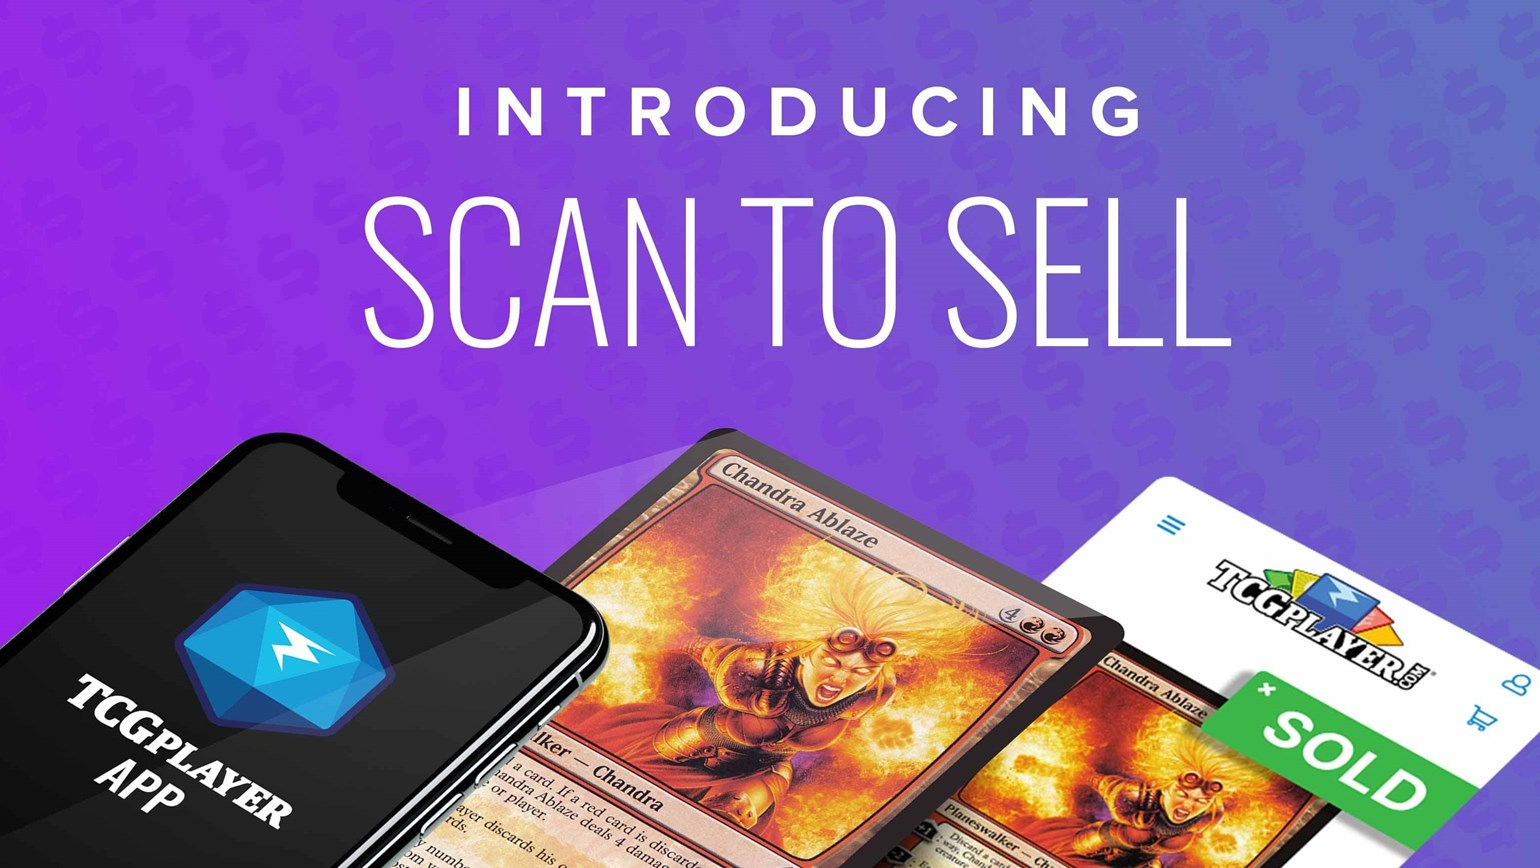 Introducing Scan to Sell for the TCGplayer App